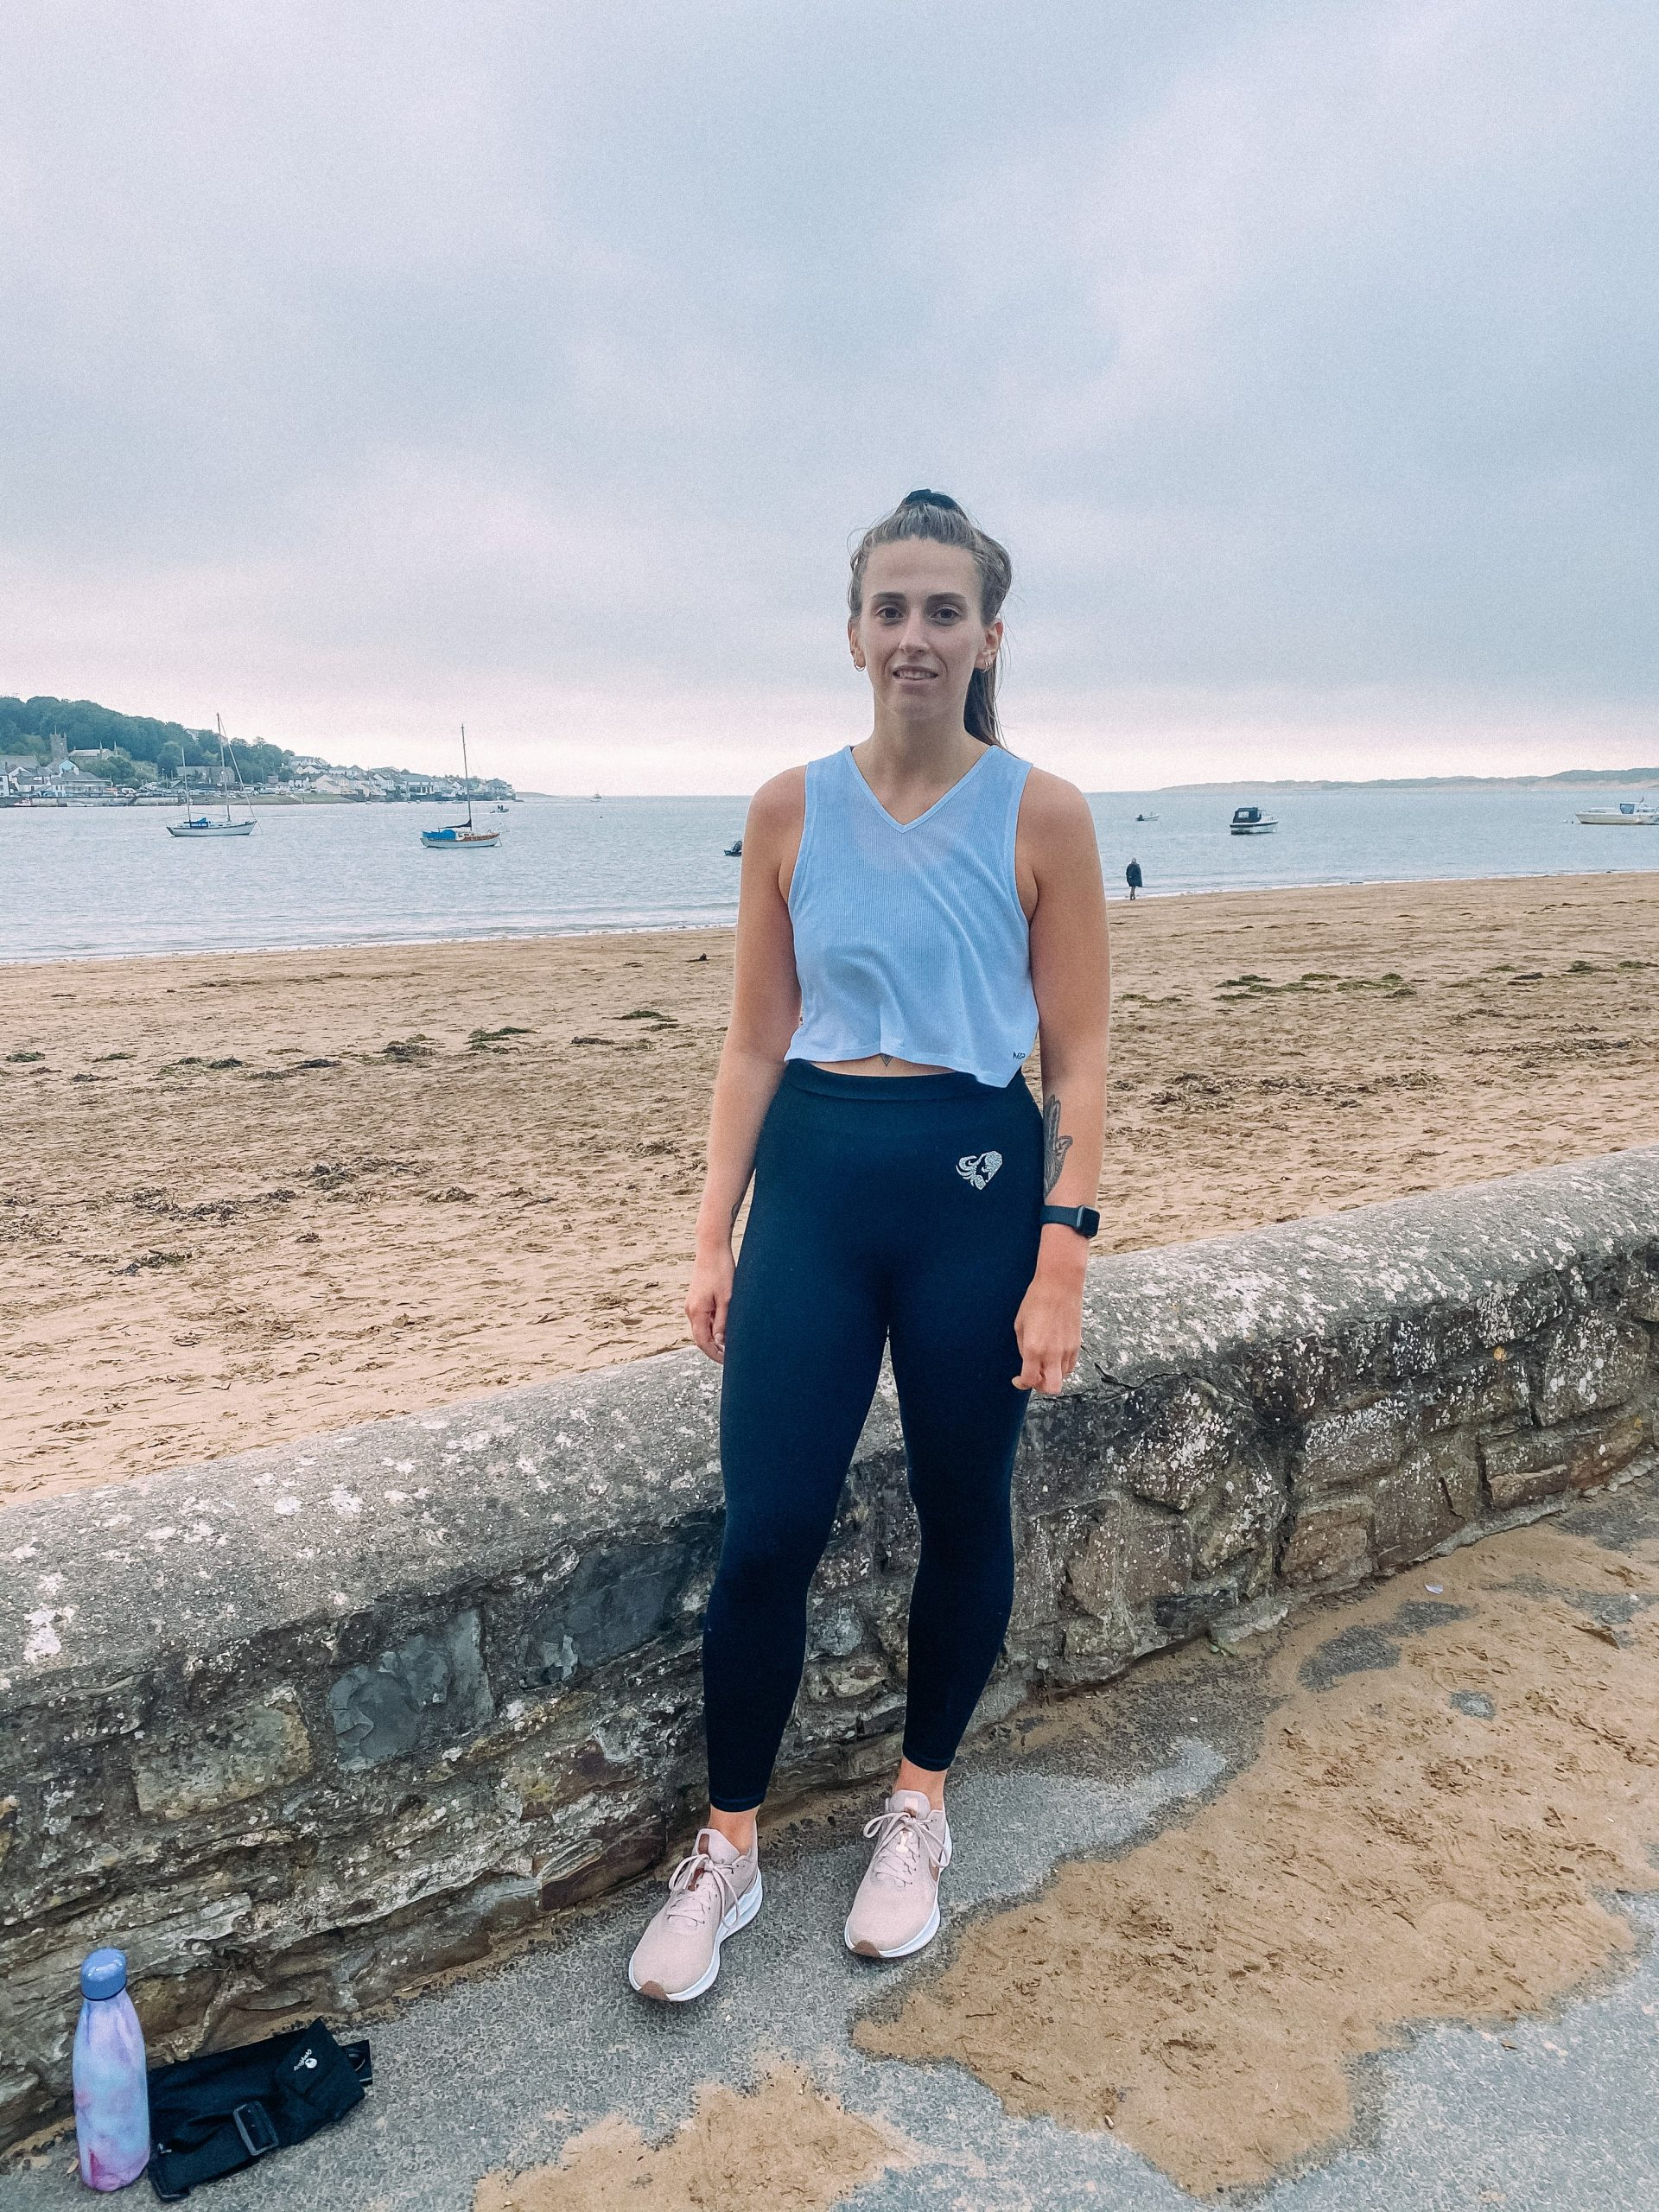 How running has changed my life | girl at Instow beach, devon wearing running clothes